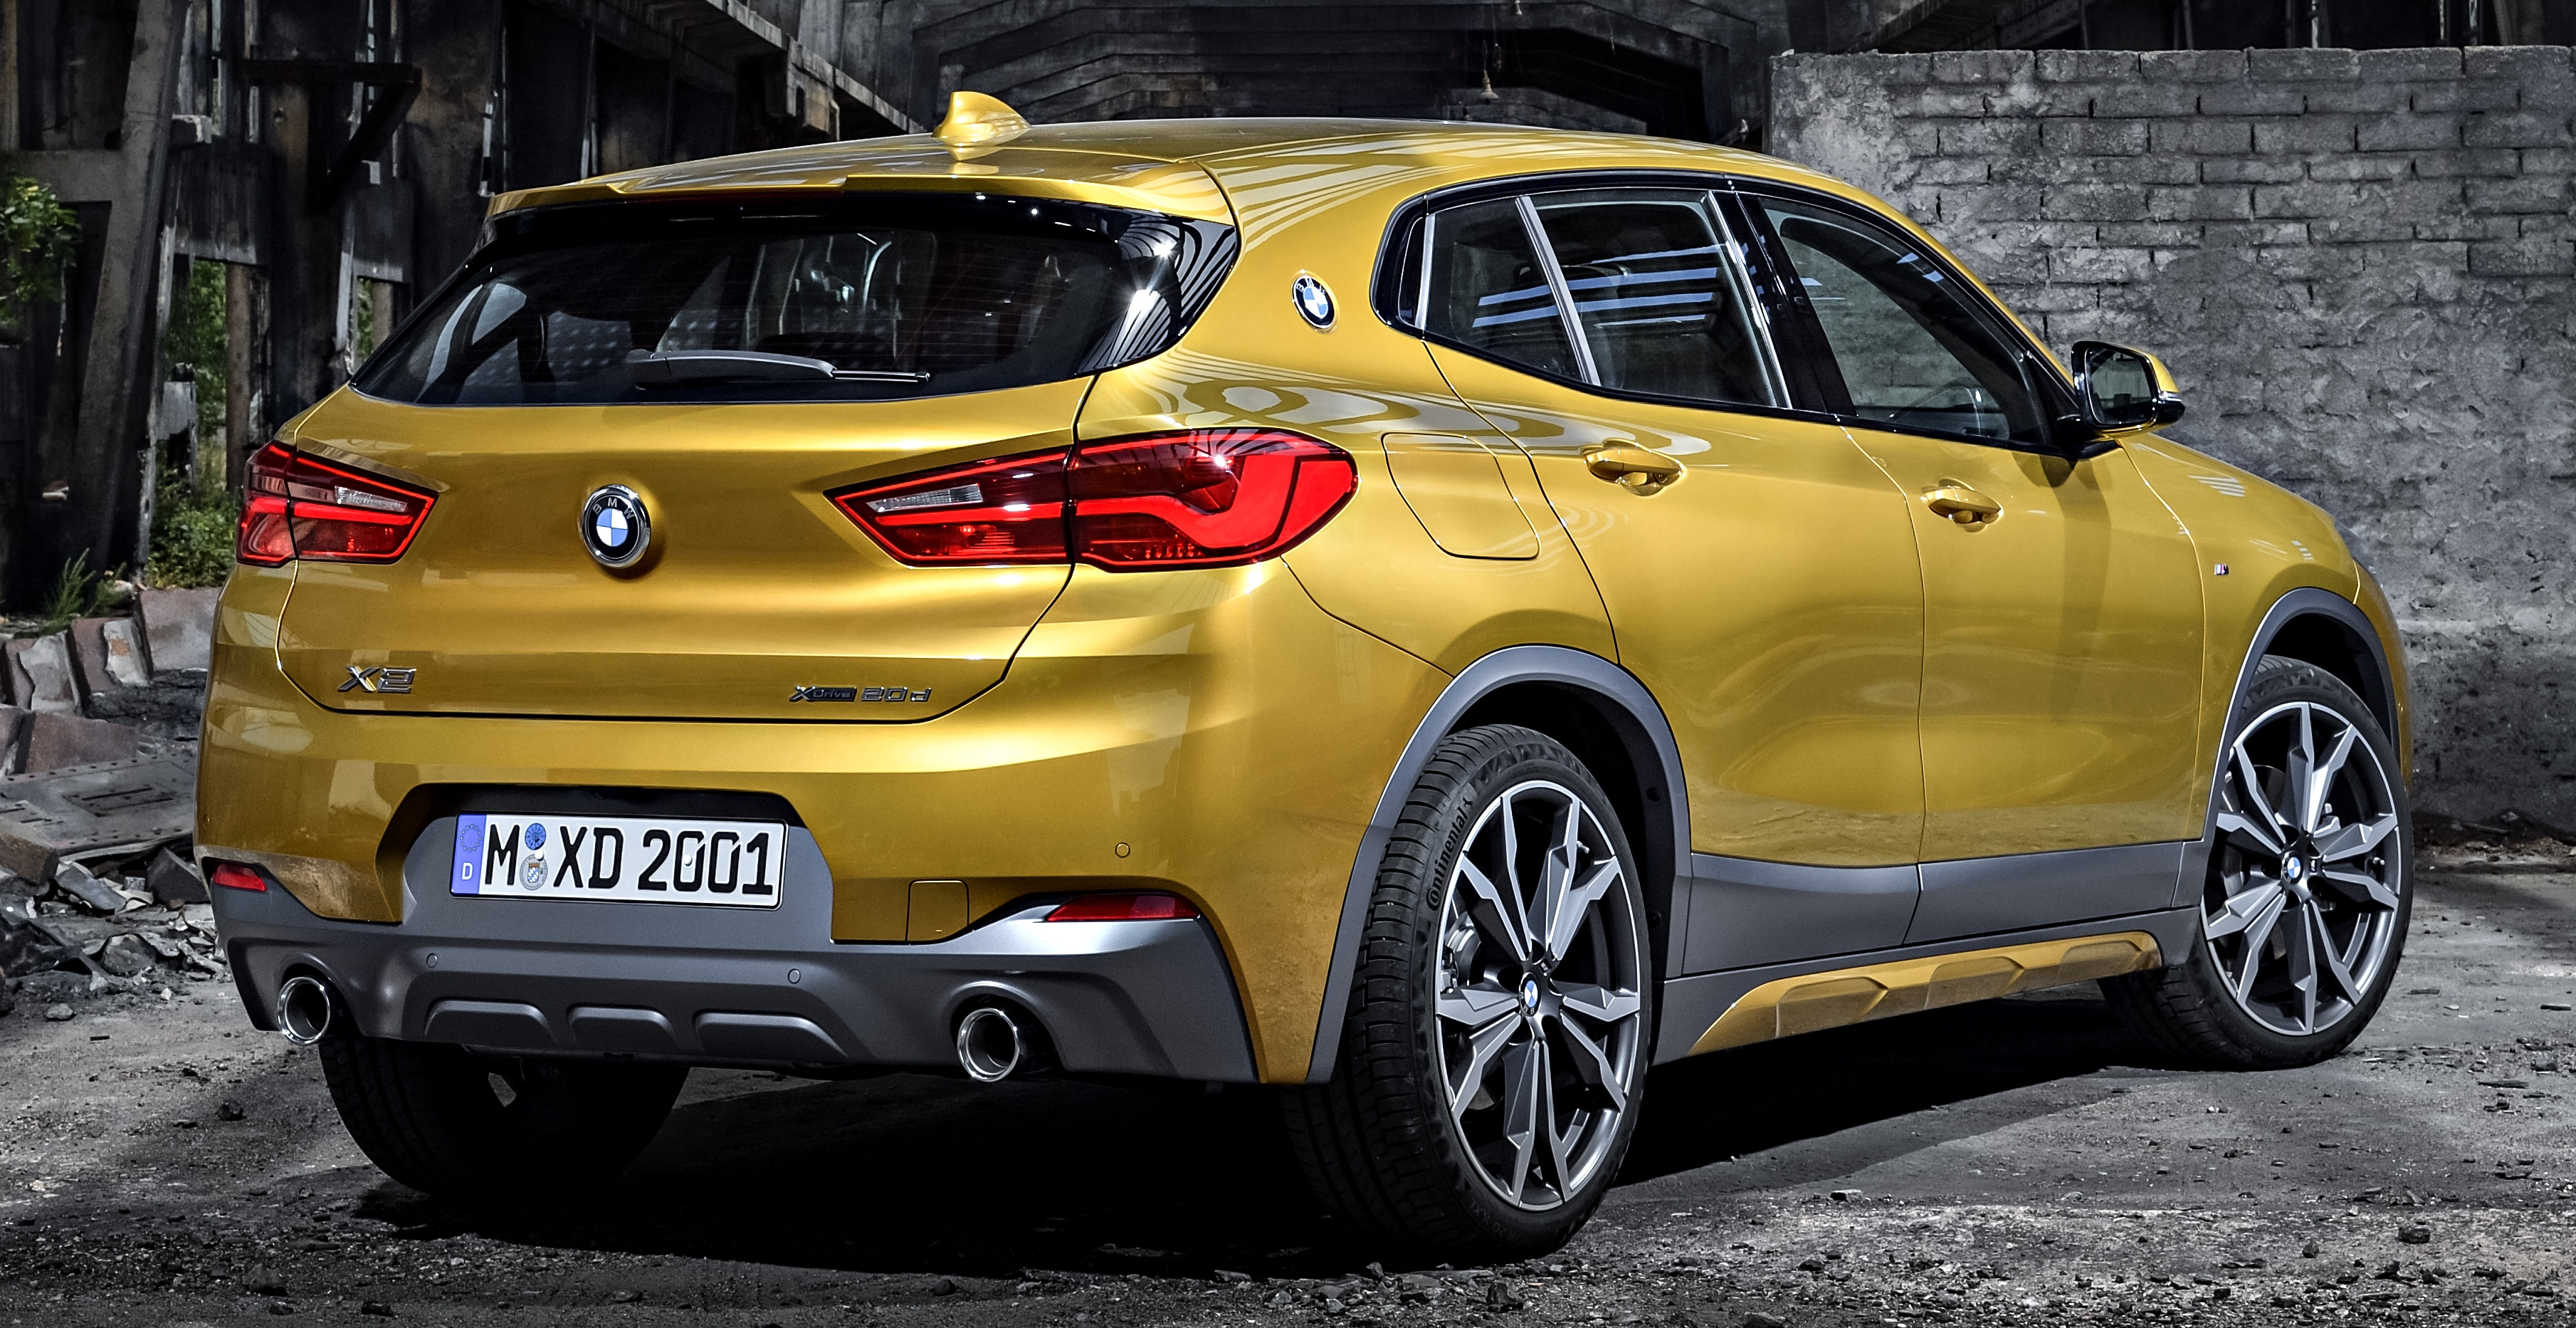 f39 bmw x2 unveiled with new m sport x package paul tan. Black Bedroom Furniture Sets. Home Design Ideas